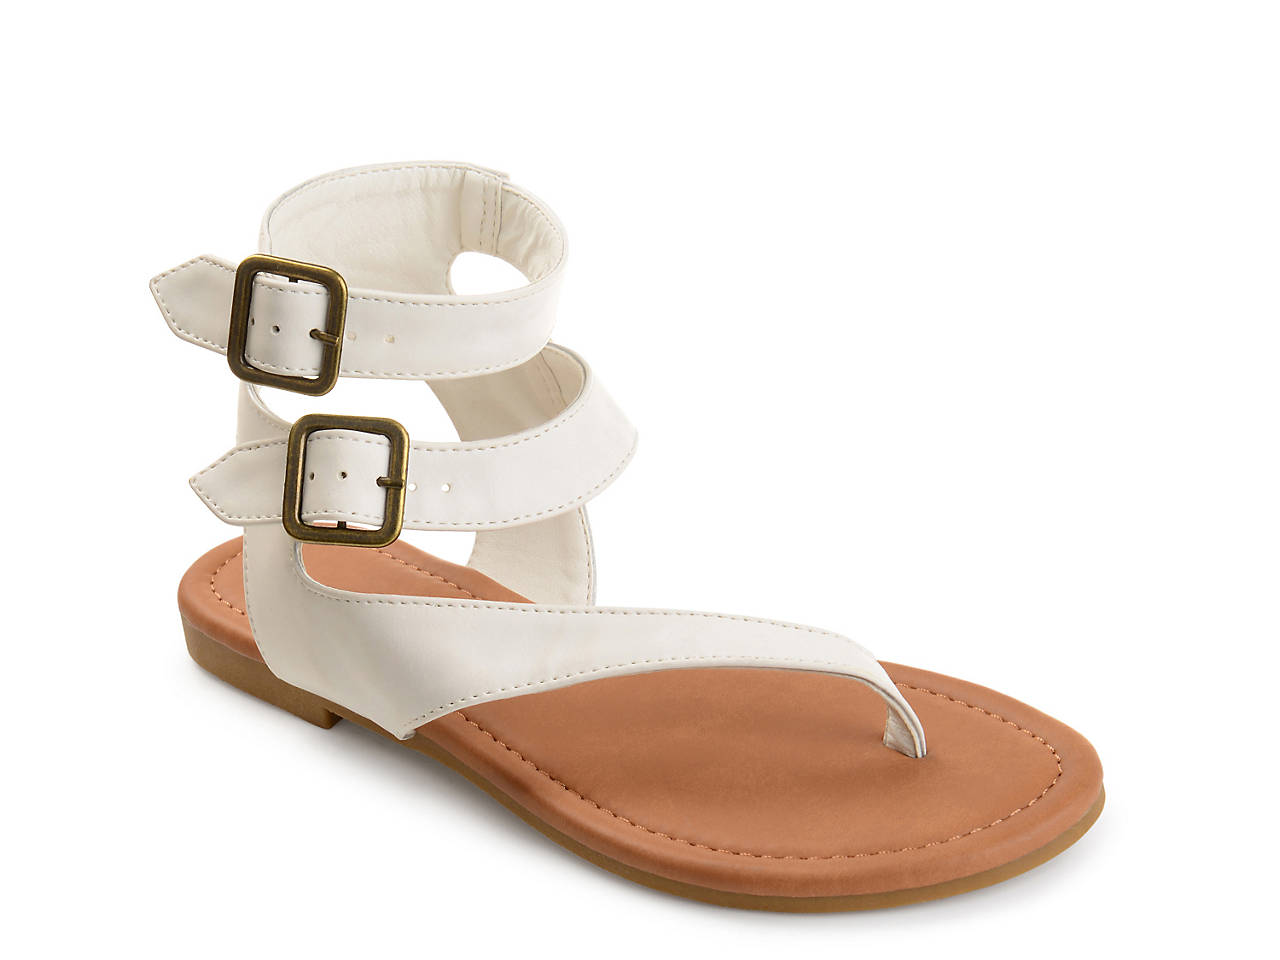 a34cdf76bef Journee Collection Kyle Flat Sandal Women s Shoes